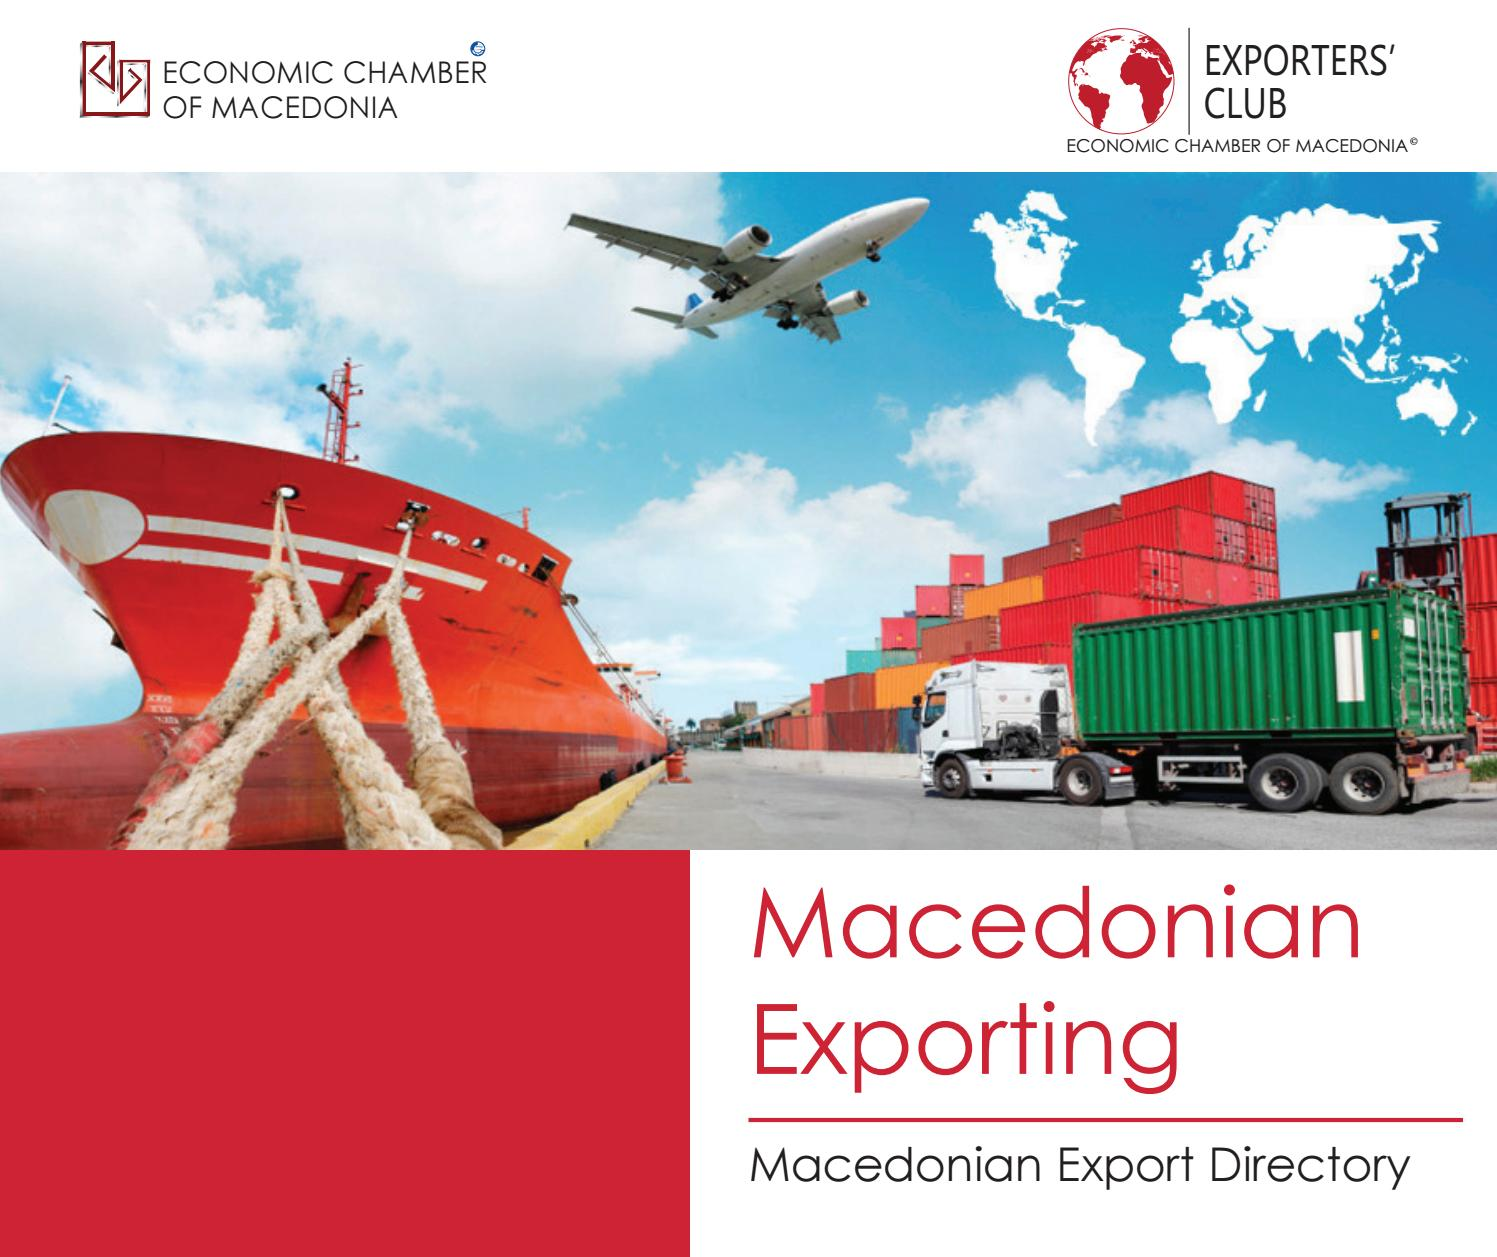 EXPORTERS CLUB - Macedonian Exporters Directory by Economic